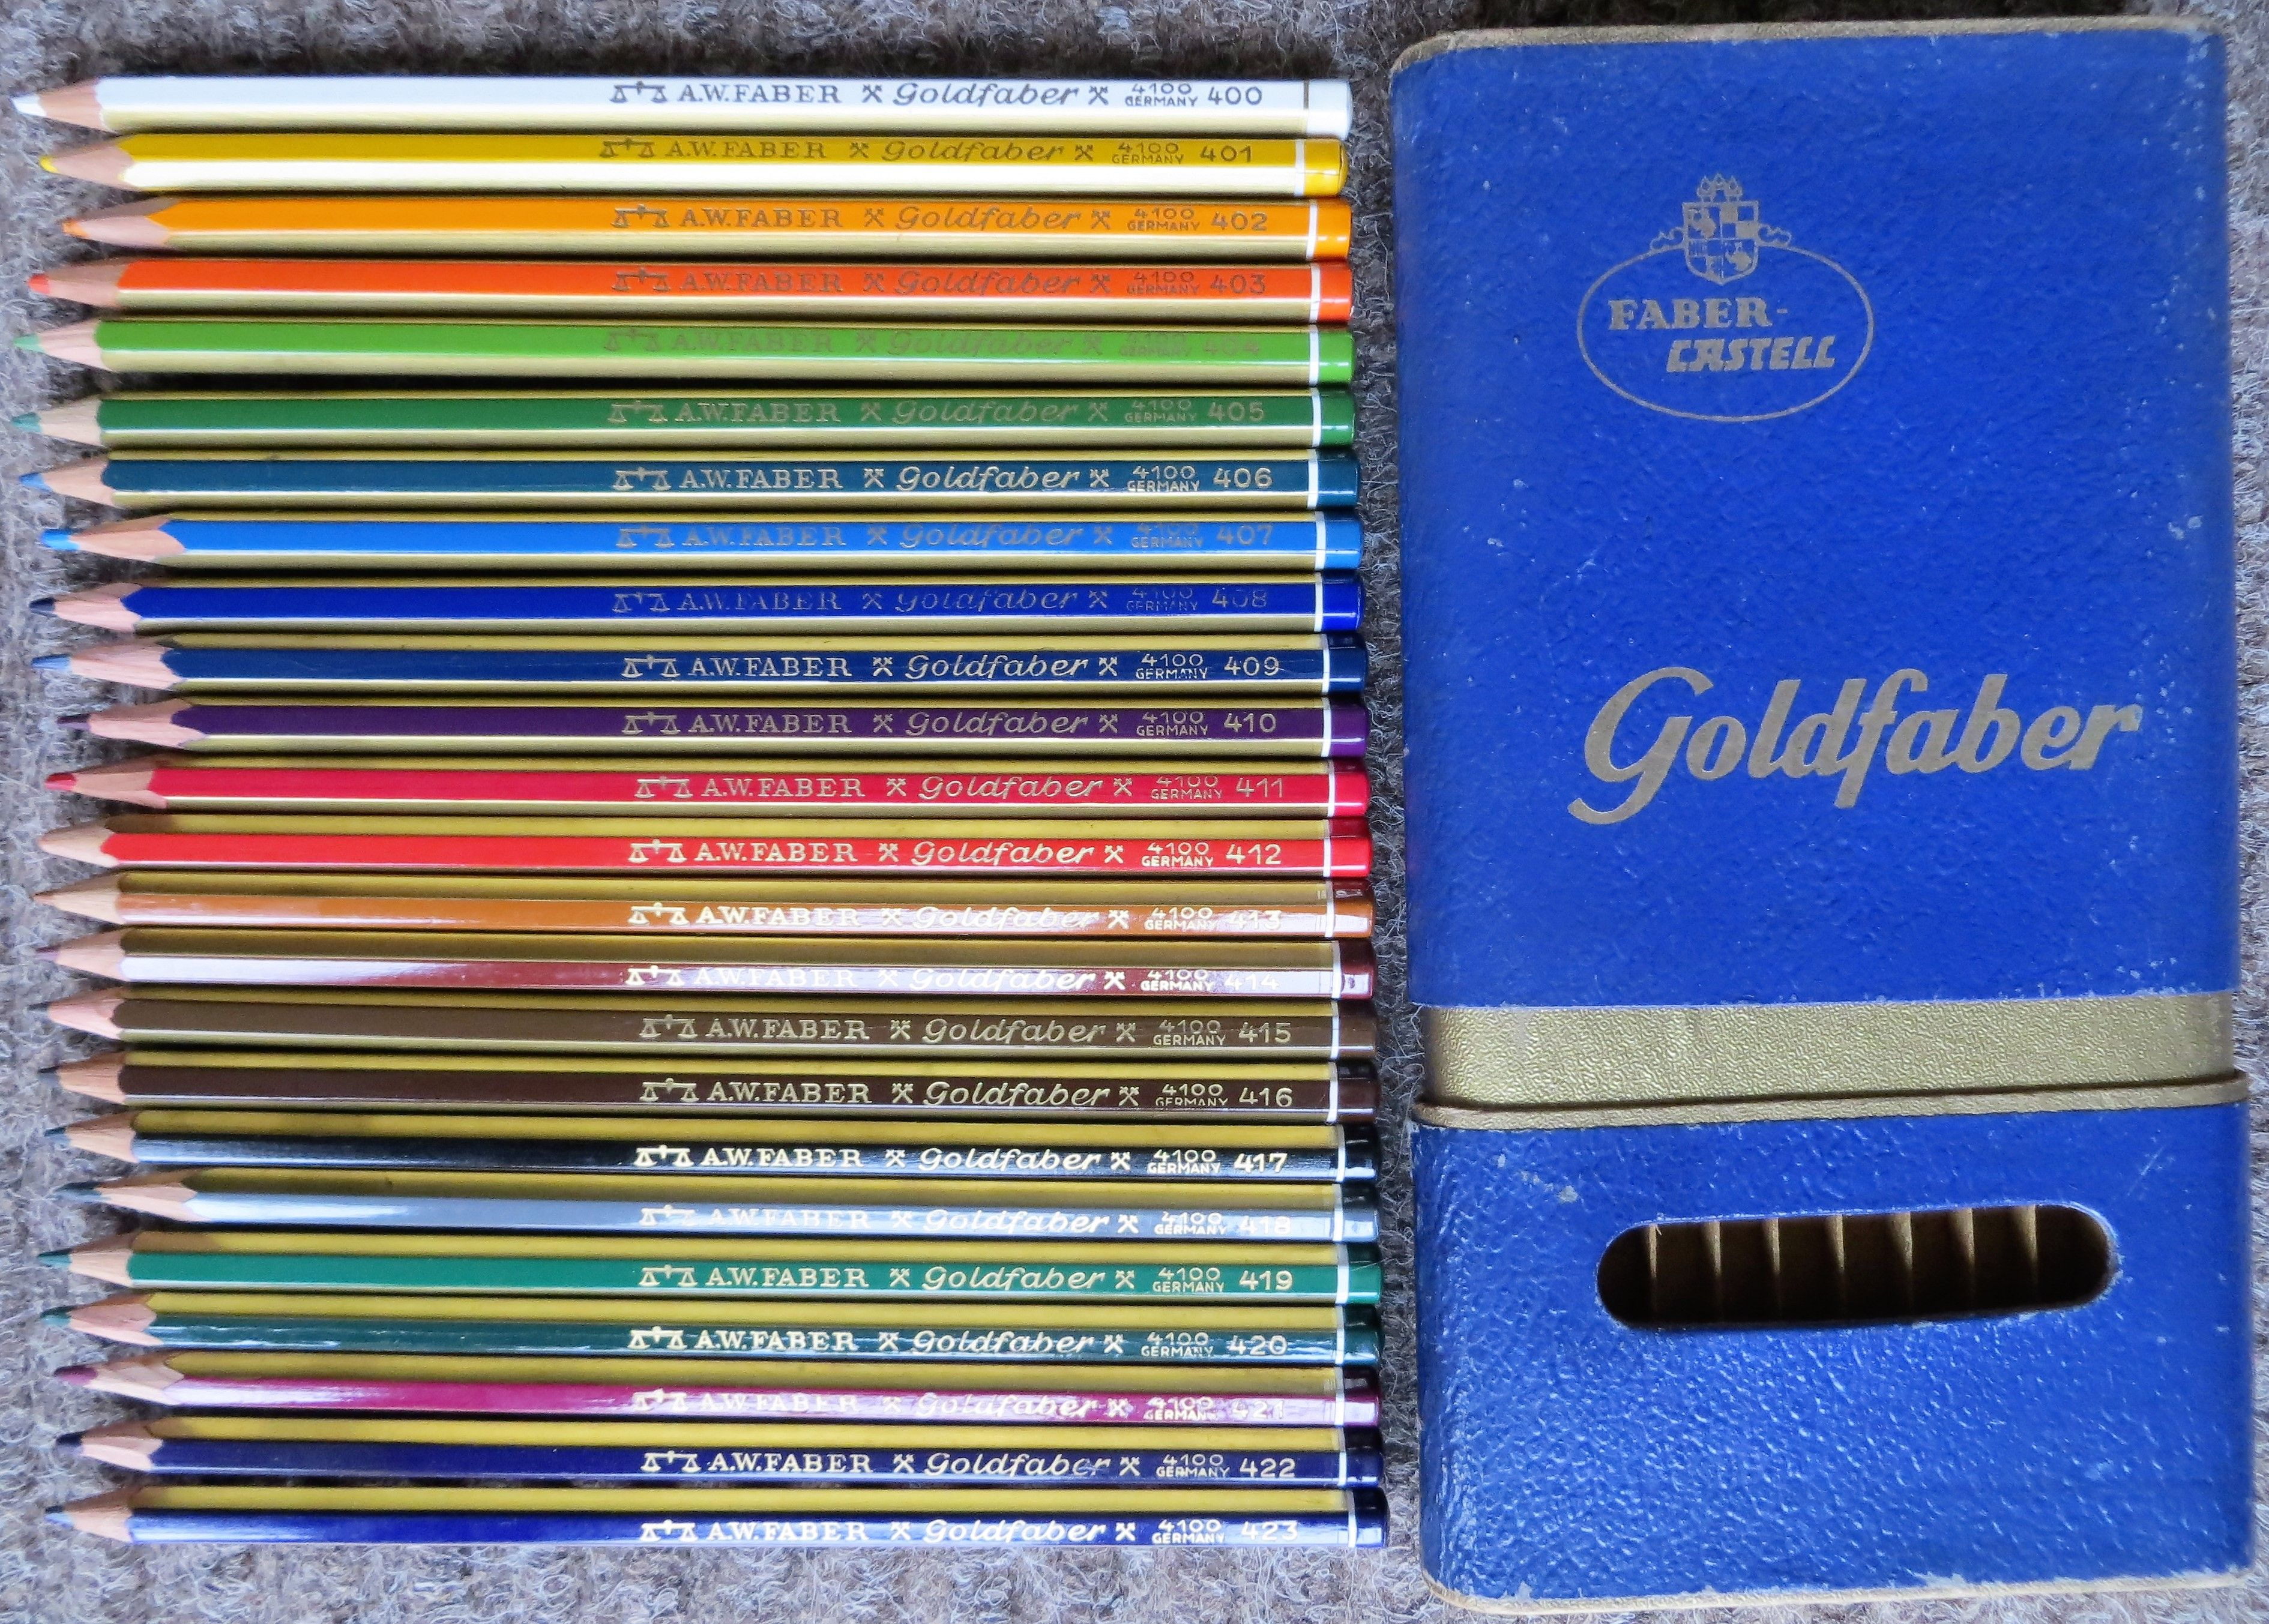 Faber Castell A W Faber Goldfaber 24 Colored Pencils Color Pencil